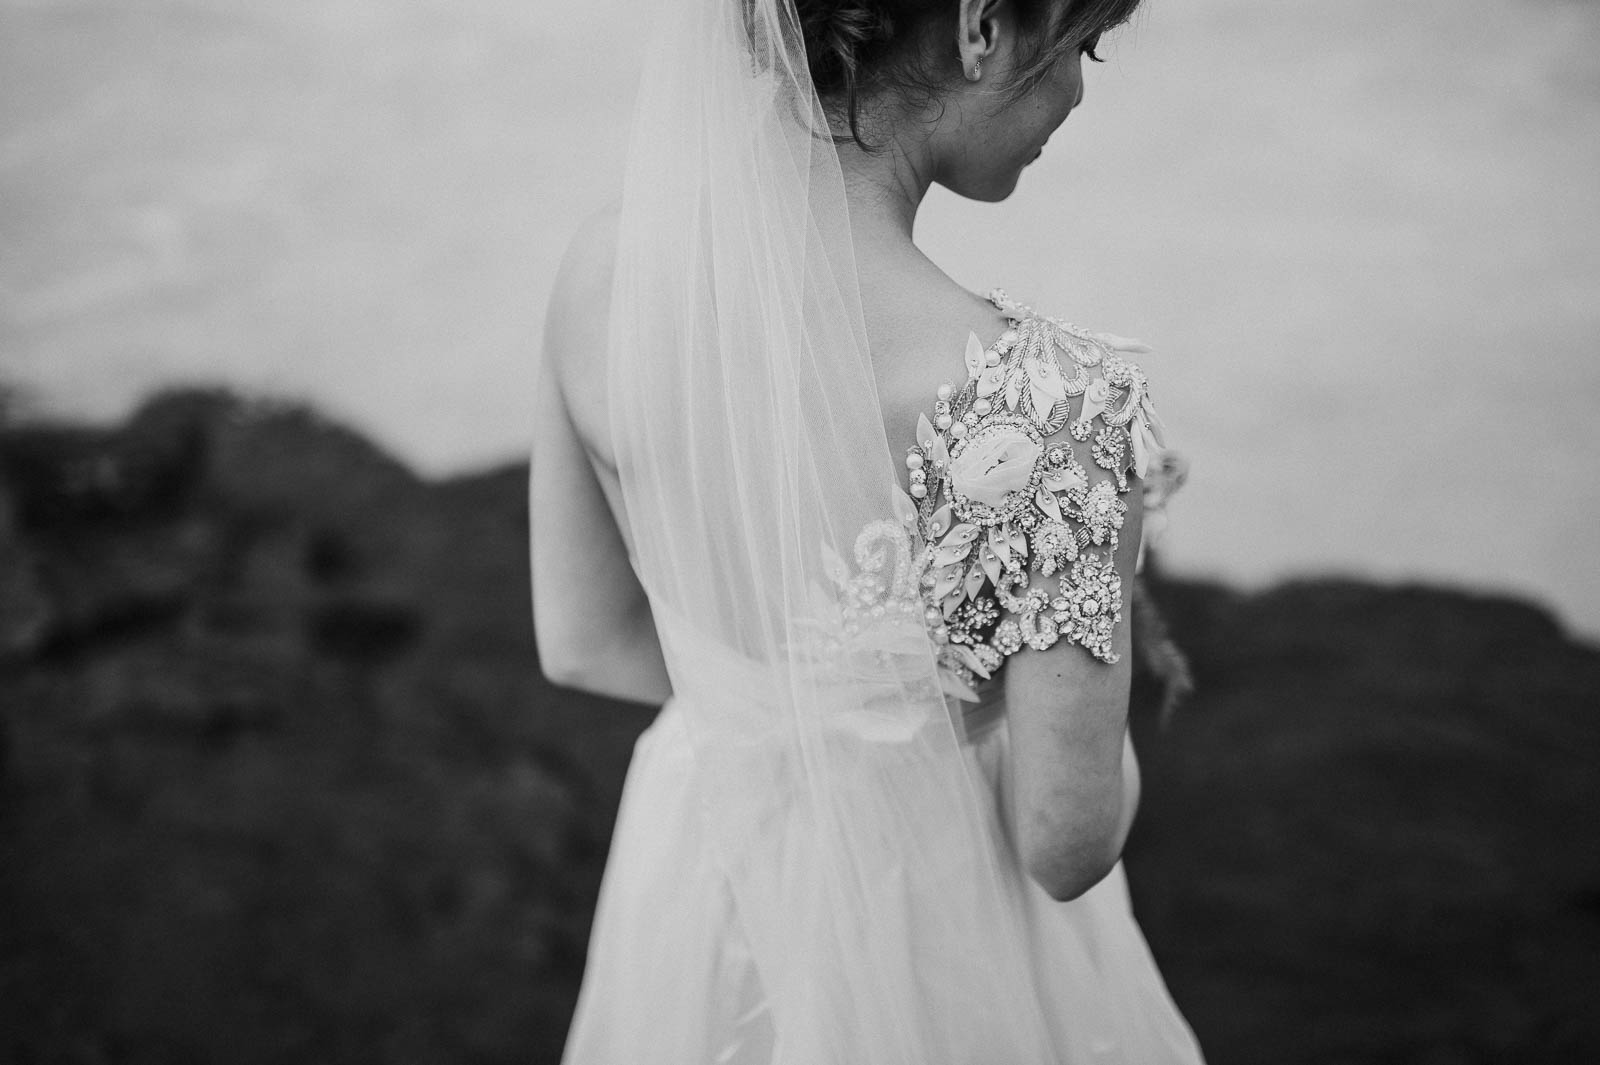 33-iceland-elopement-bride-dress